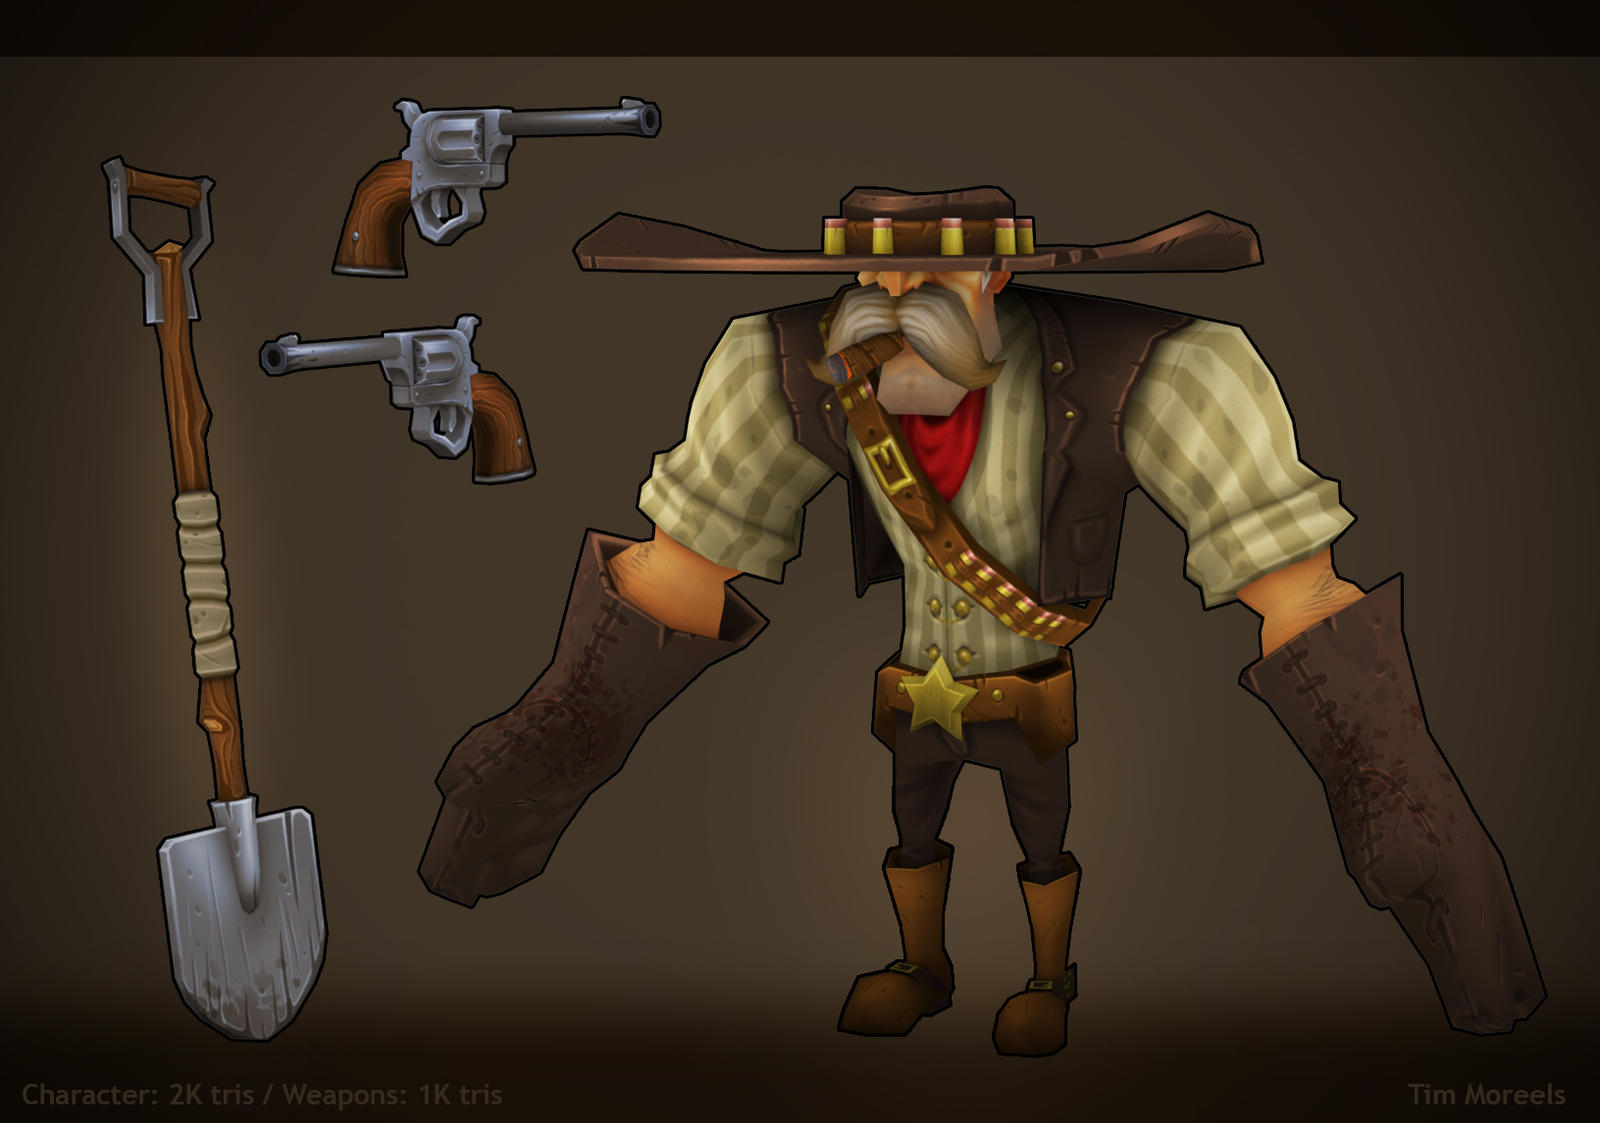 low_poly_cowboy__to_be_rigged_by_madgunslinger-d8pf7mb.jpg